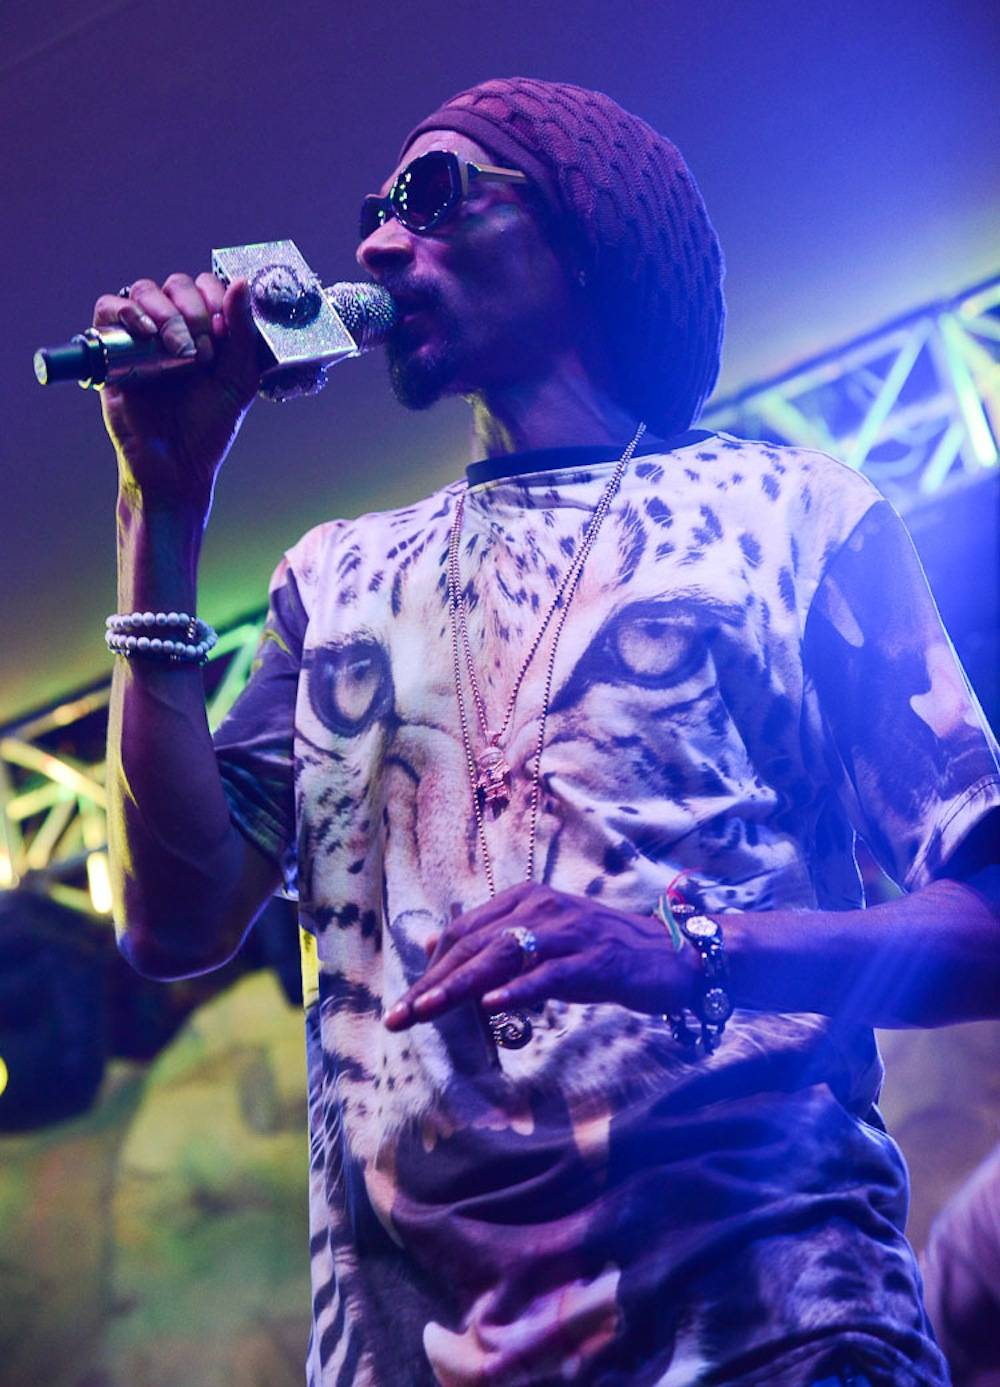 Snoop Dogg aka Snoop Lion performs at the Soundwave stage at the Hard Rock Hotel in Las Vegas, NV